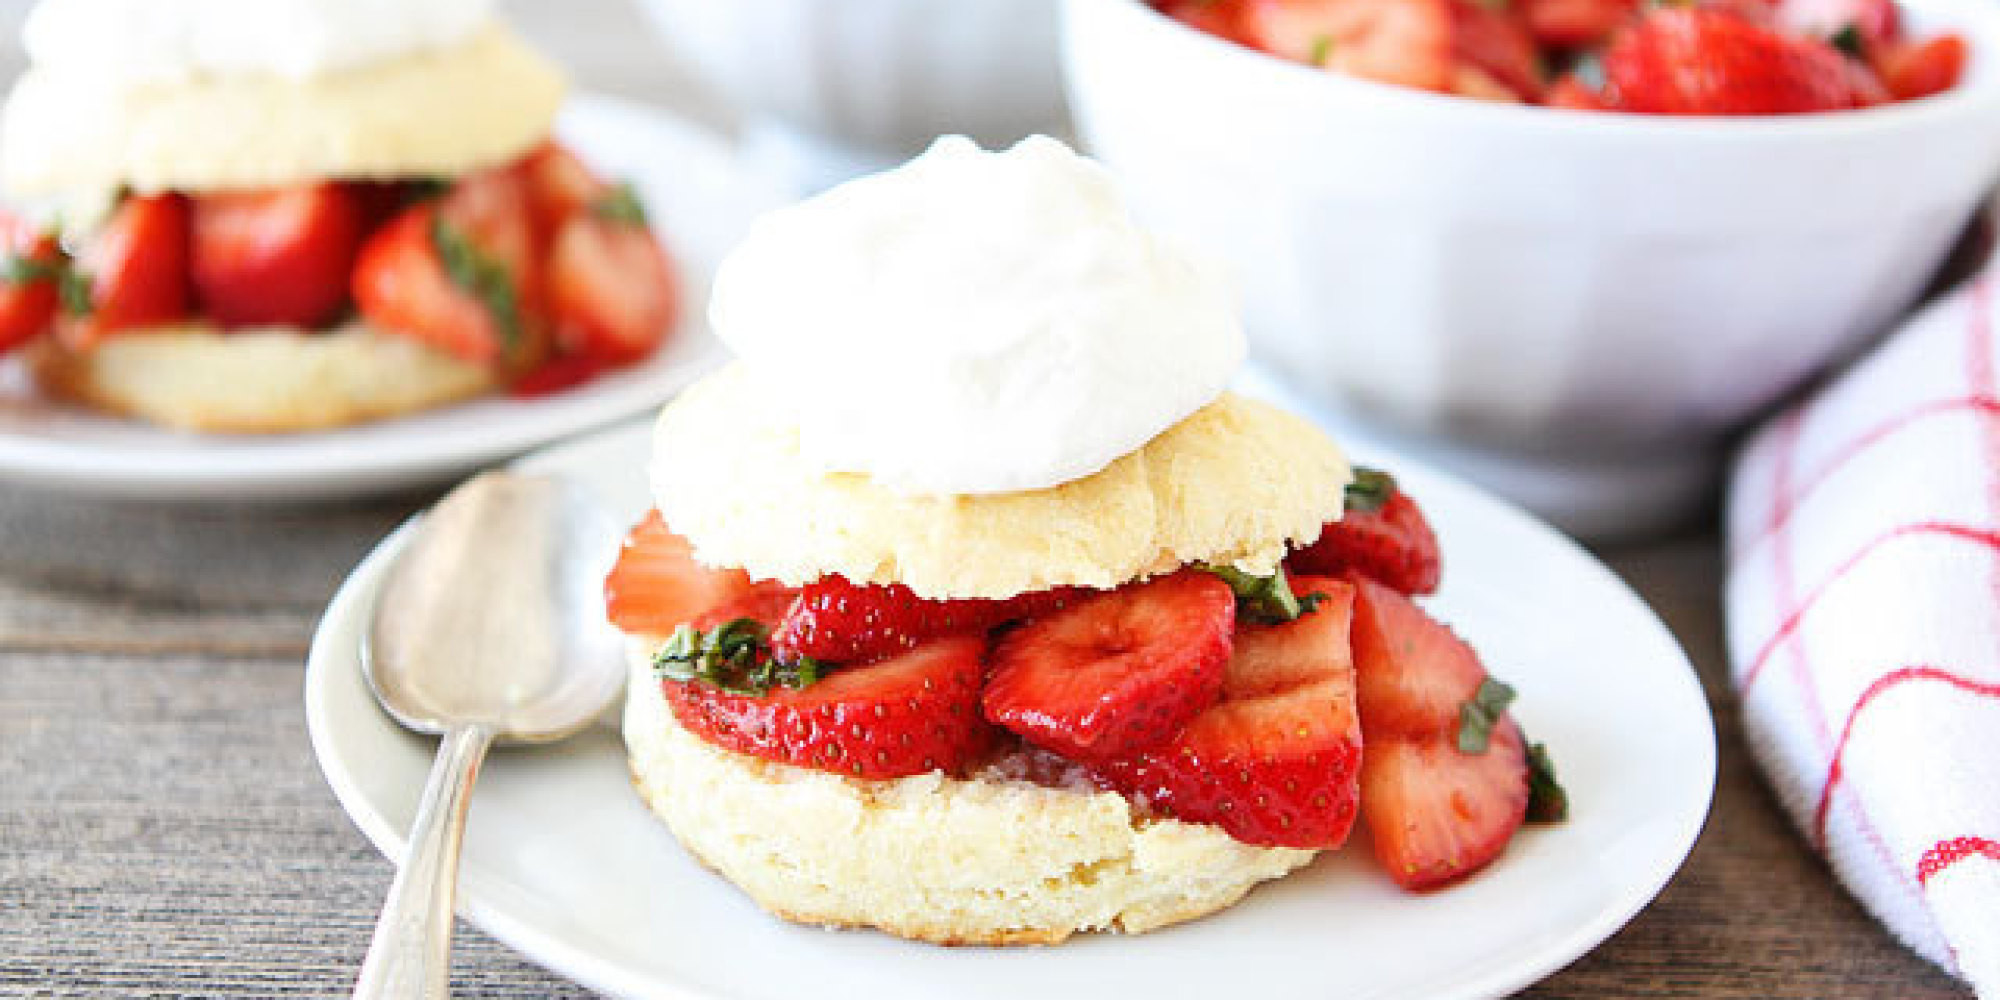 Whipped Cream Desserts  Desserts That ll Satisfy Your Whipped Cream Craving PHOTOS